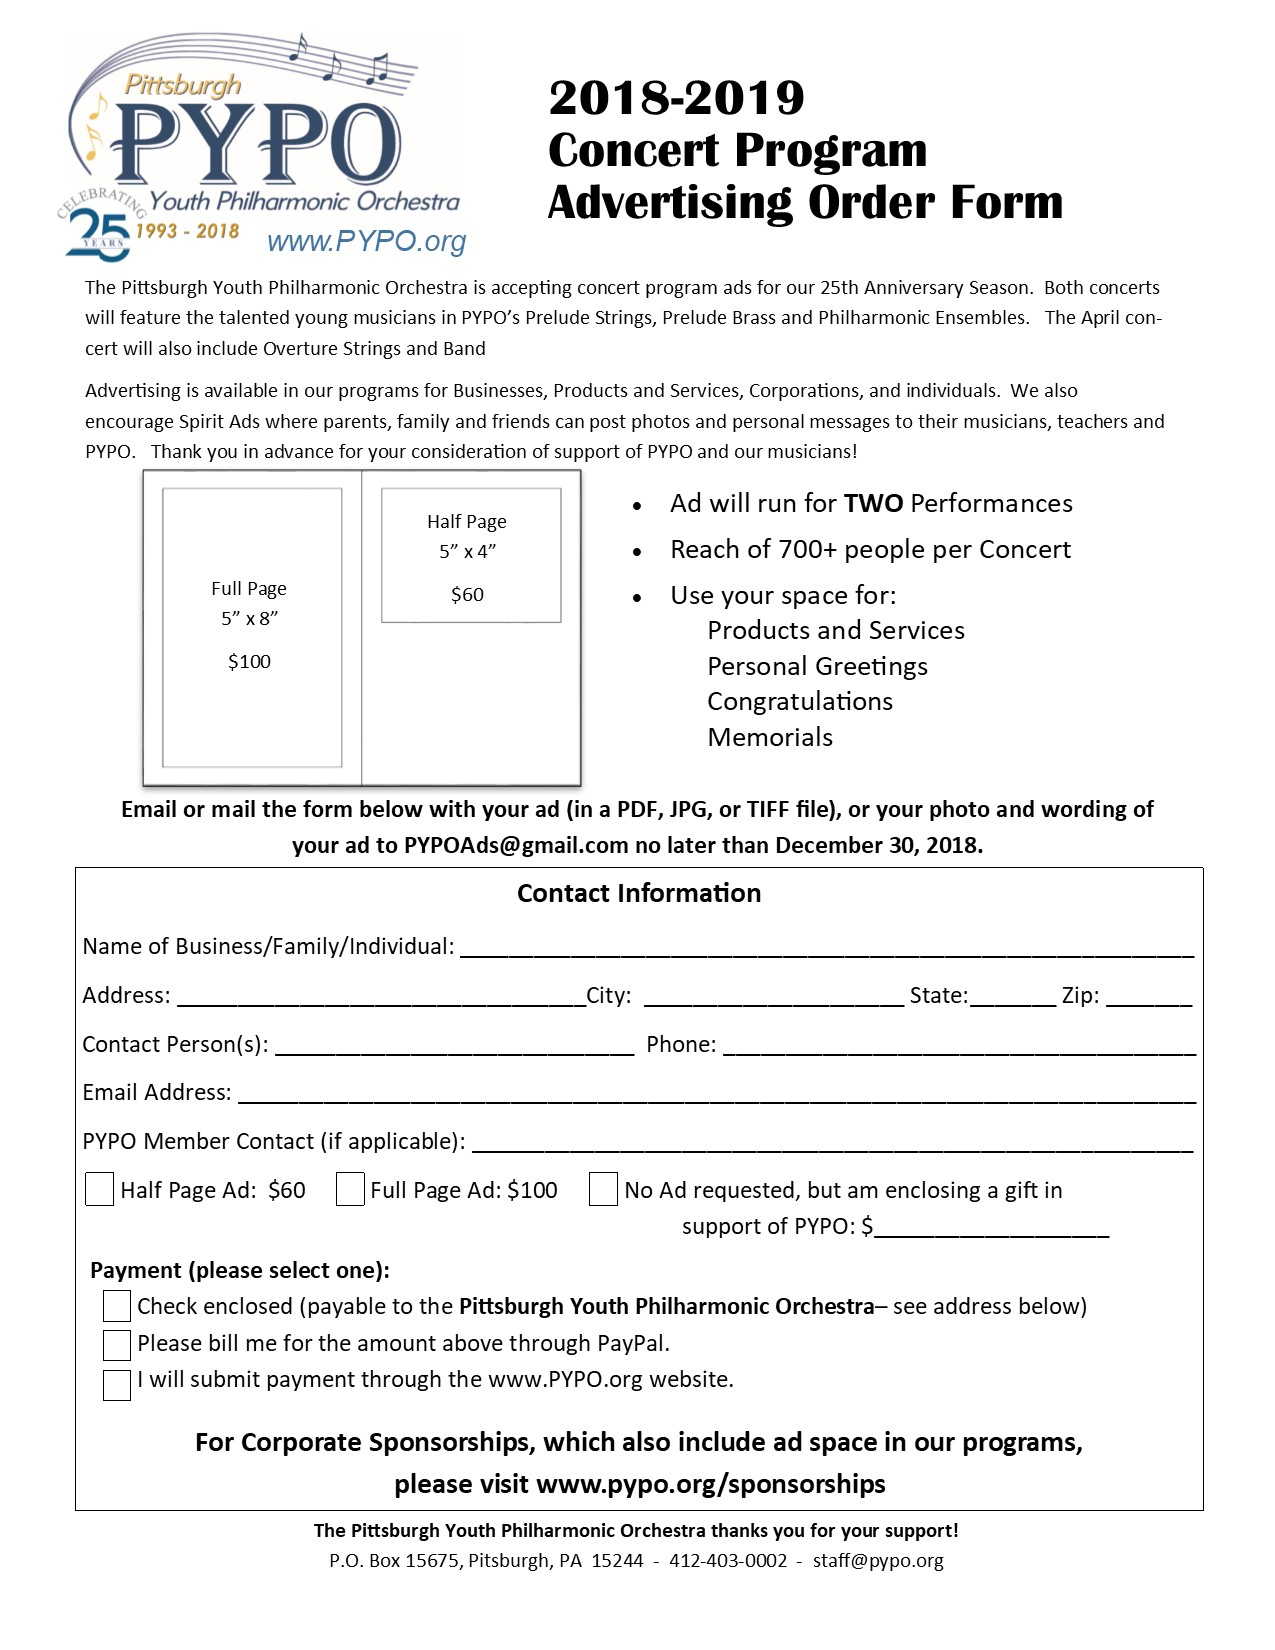 pypo-program-ad-order-form-2018-2019